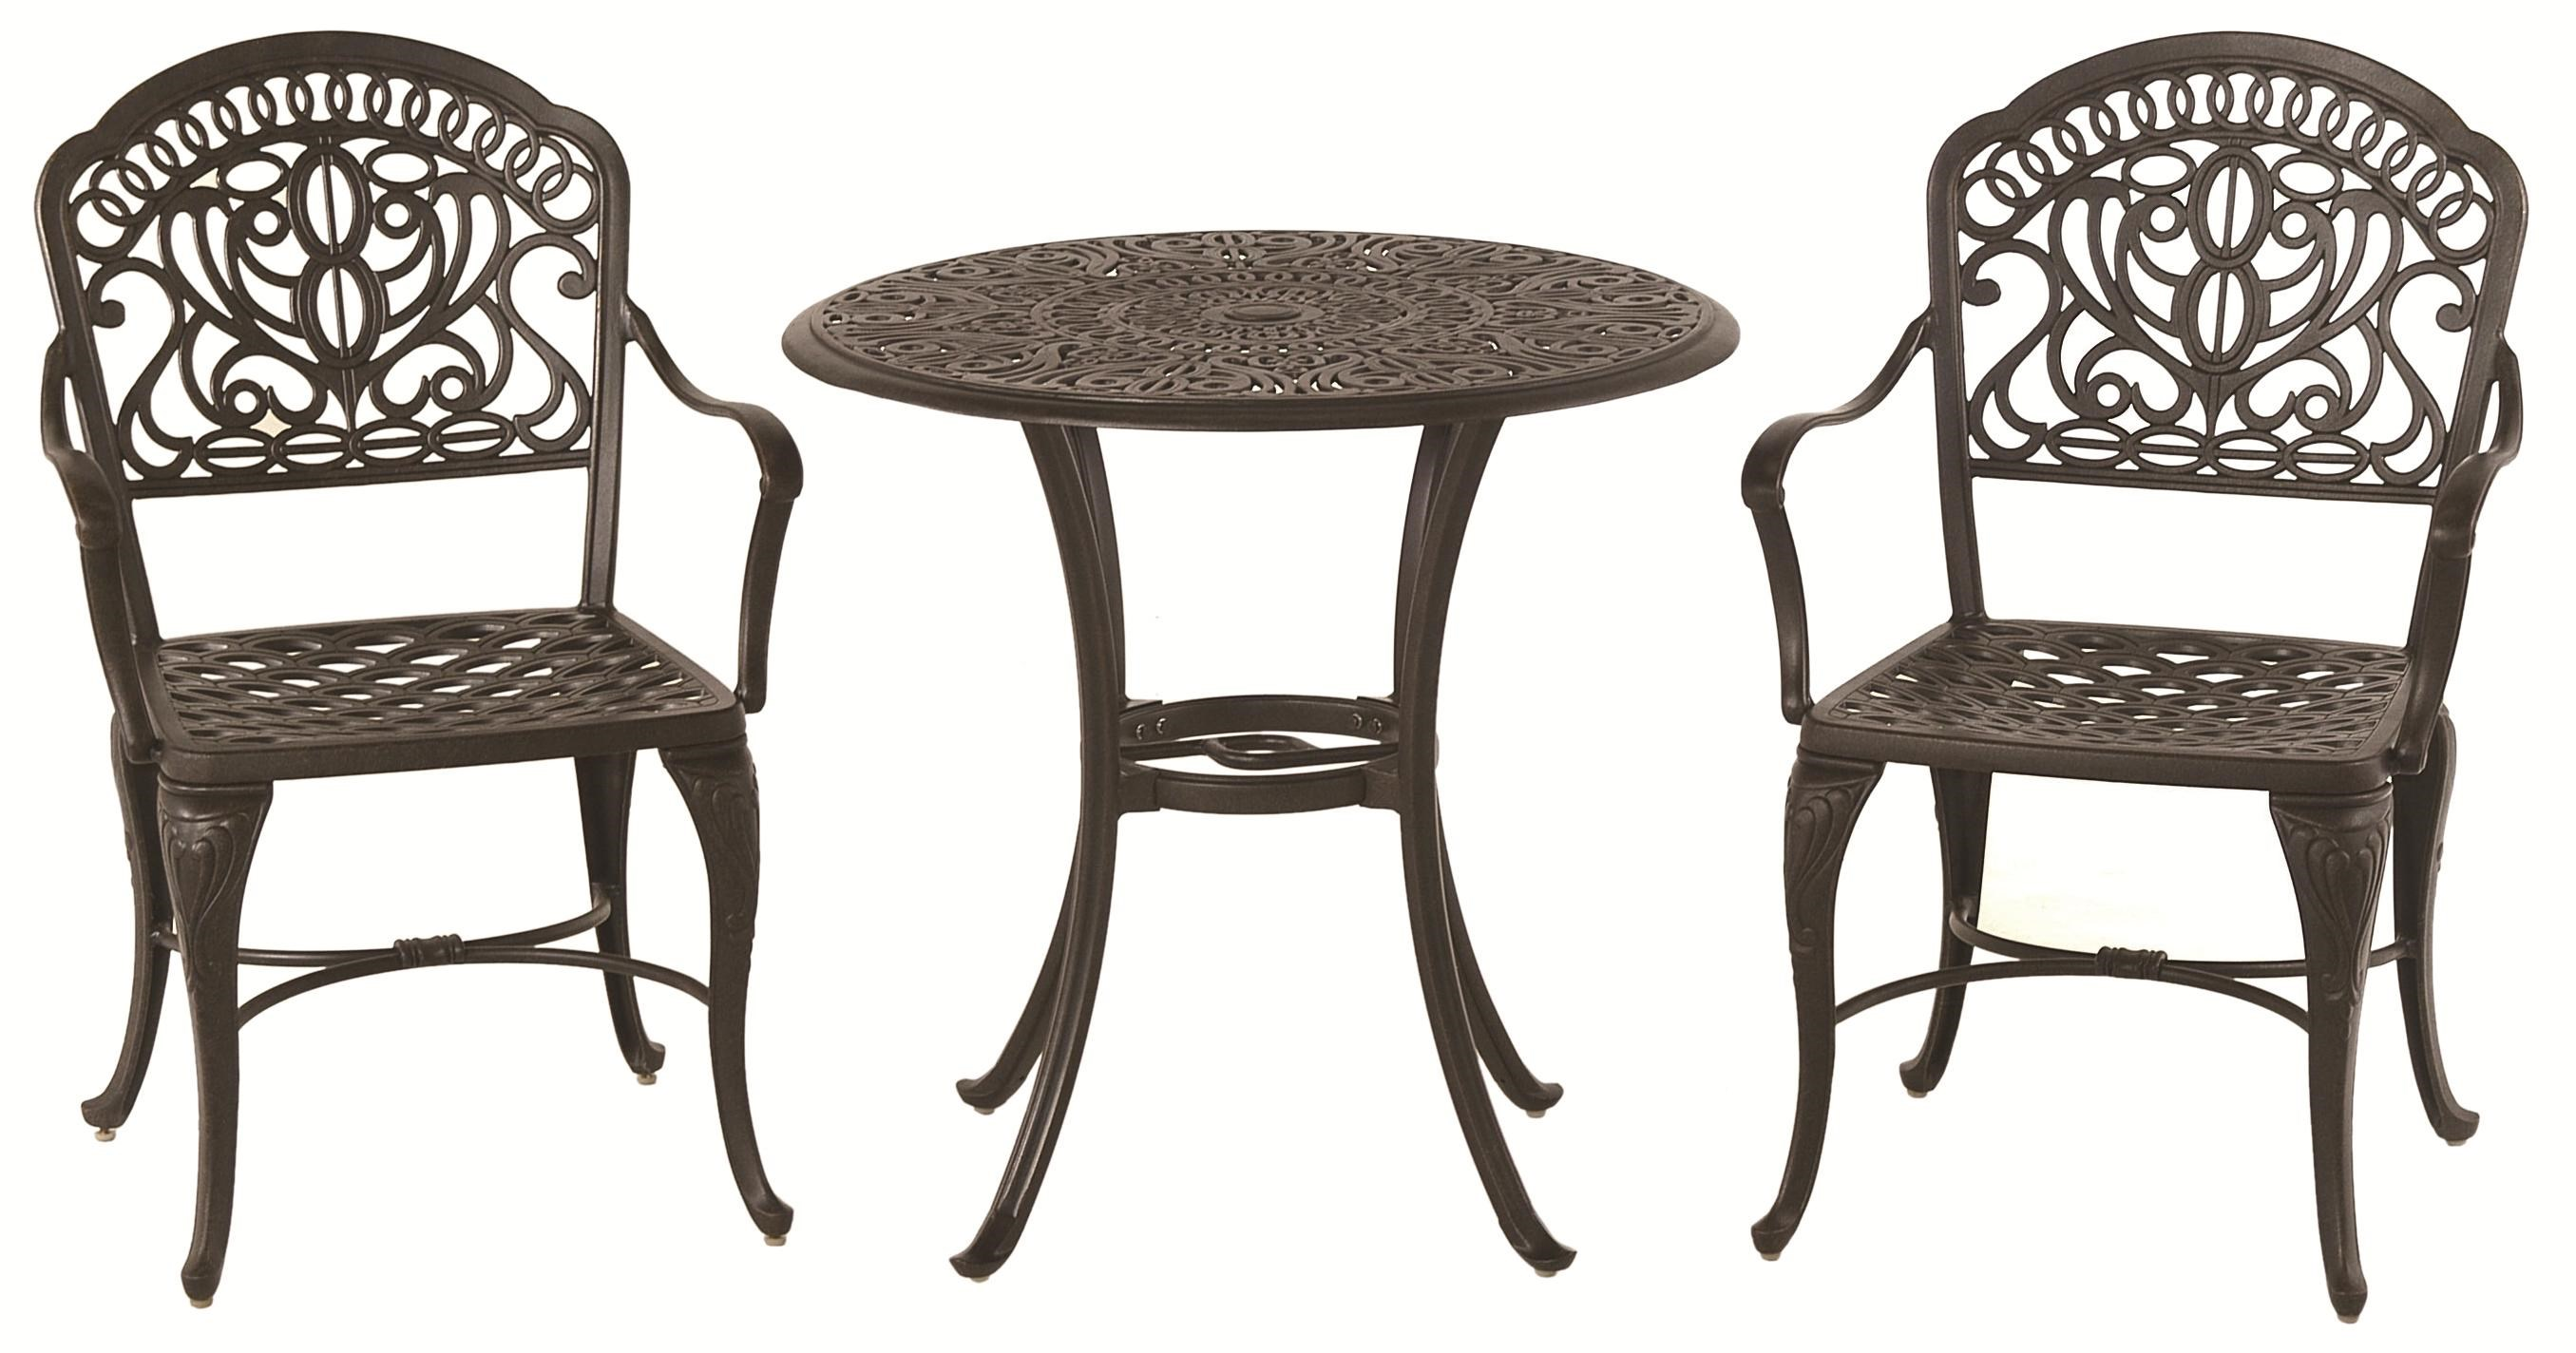 Great Tuscany 018001 3 Piece Bistro Set With Ornate Casting And Detailed Legs By  Hanamint